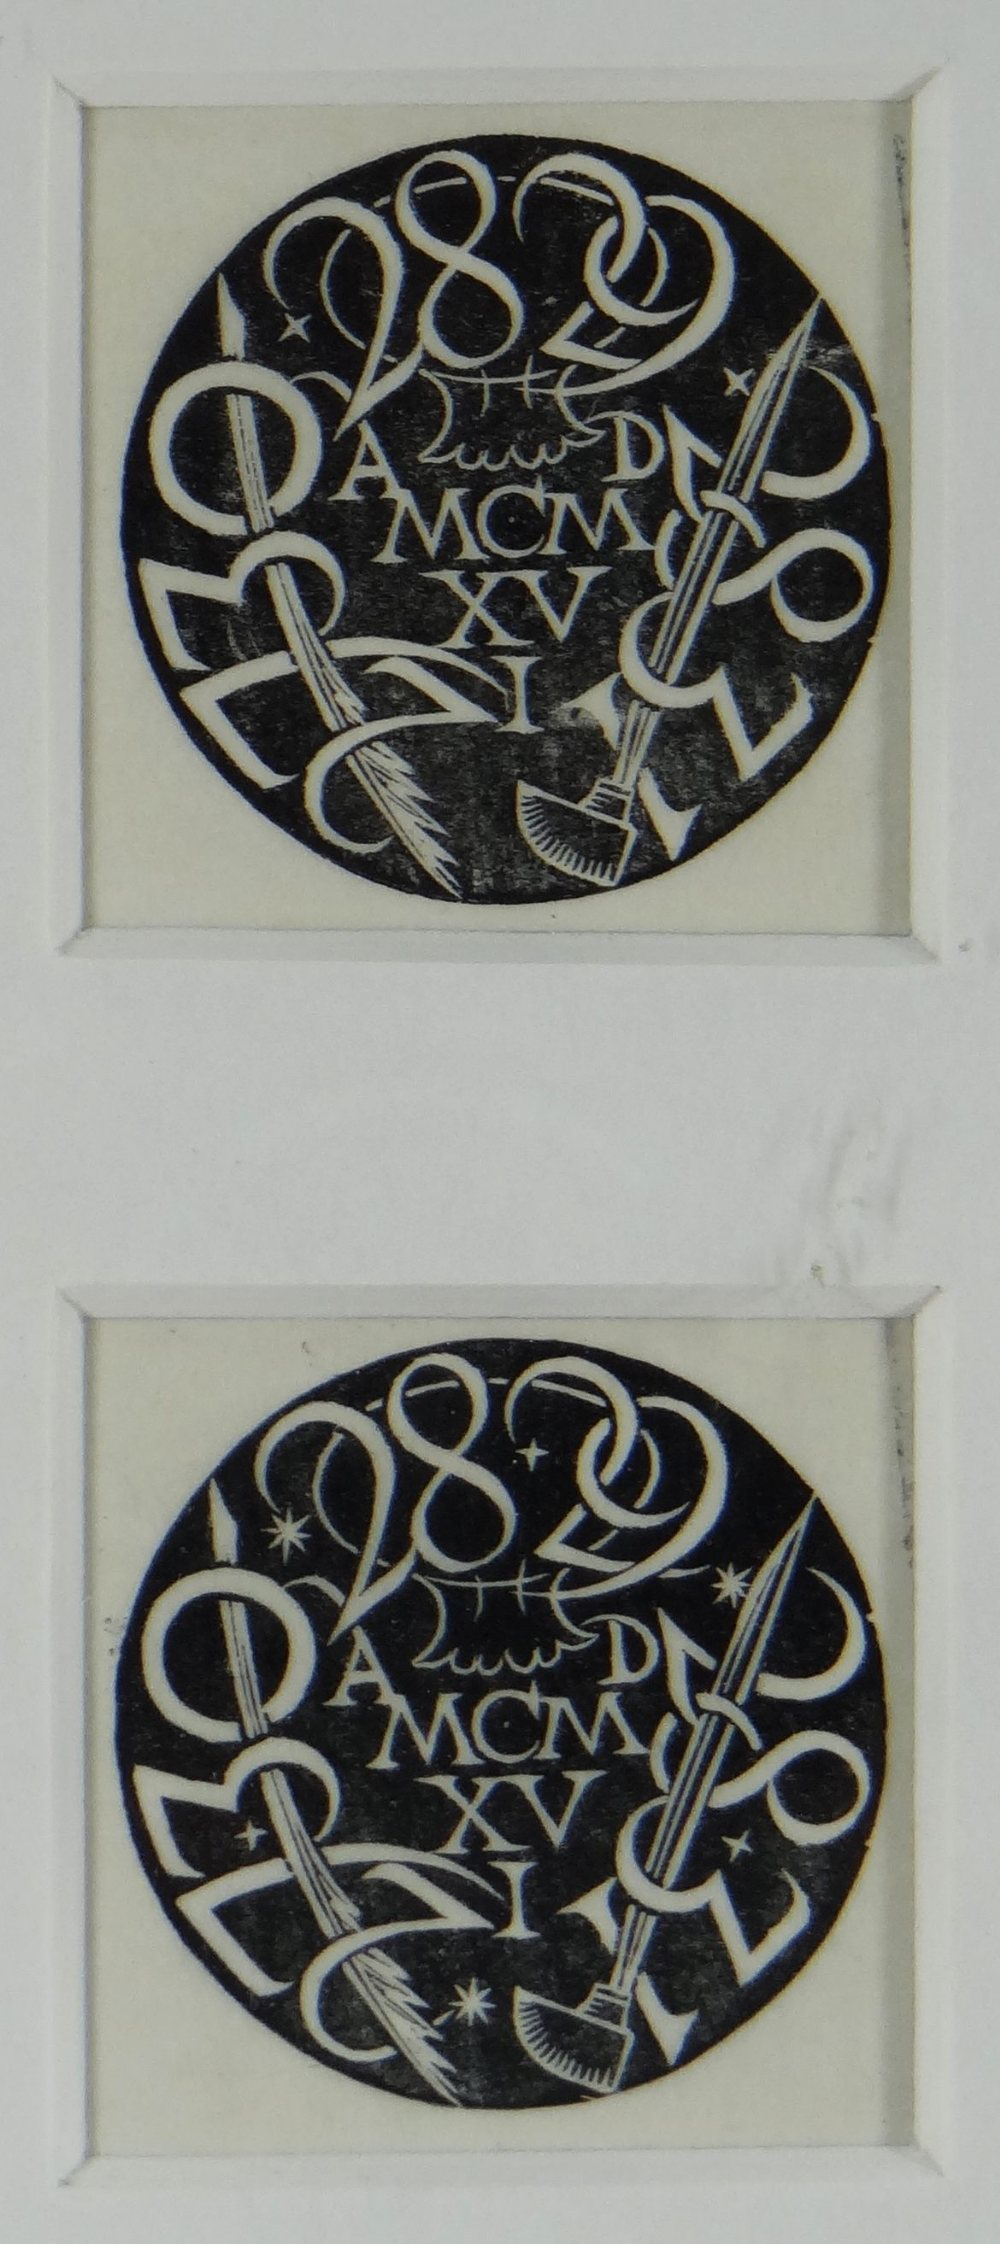 ERIC GILL pair of wood engravings framed together - entitled 'Circular Device', circa 1916, 4 x 4cms